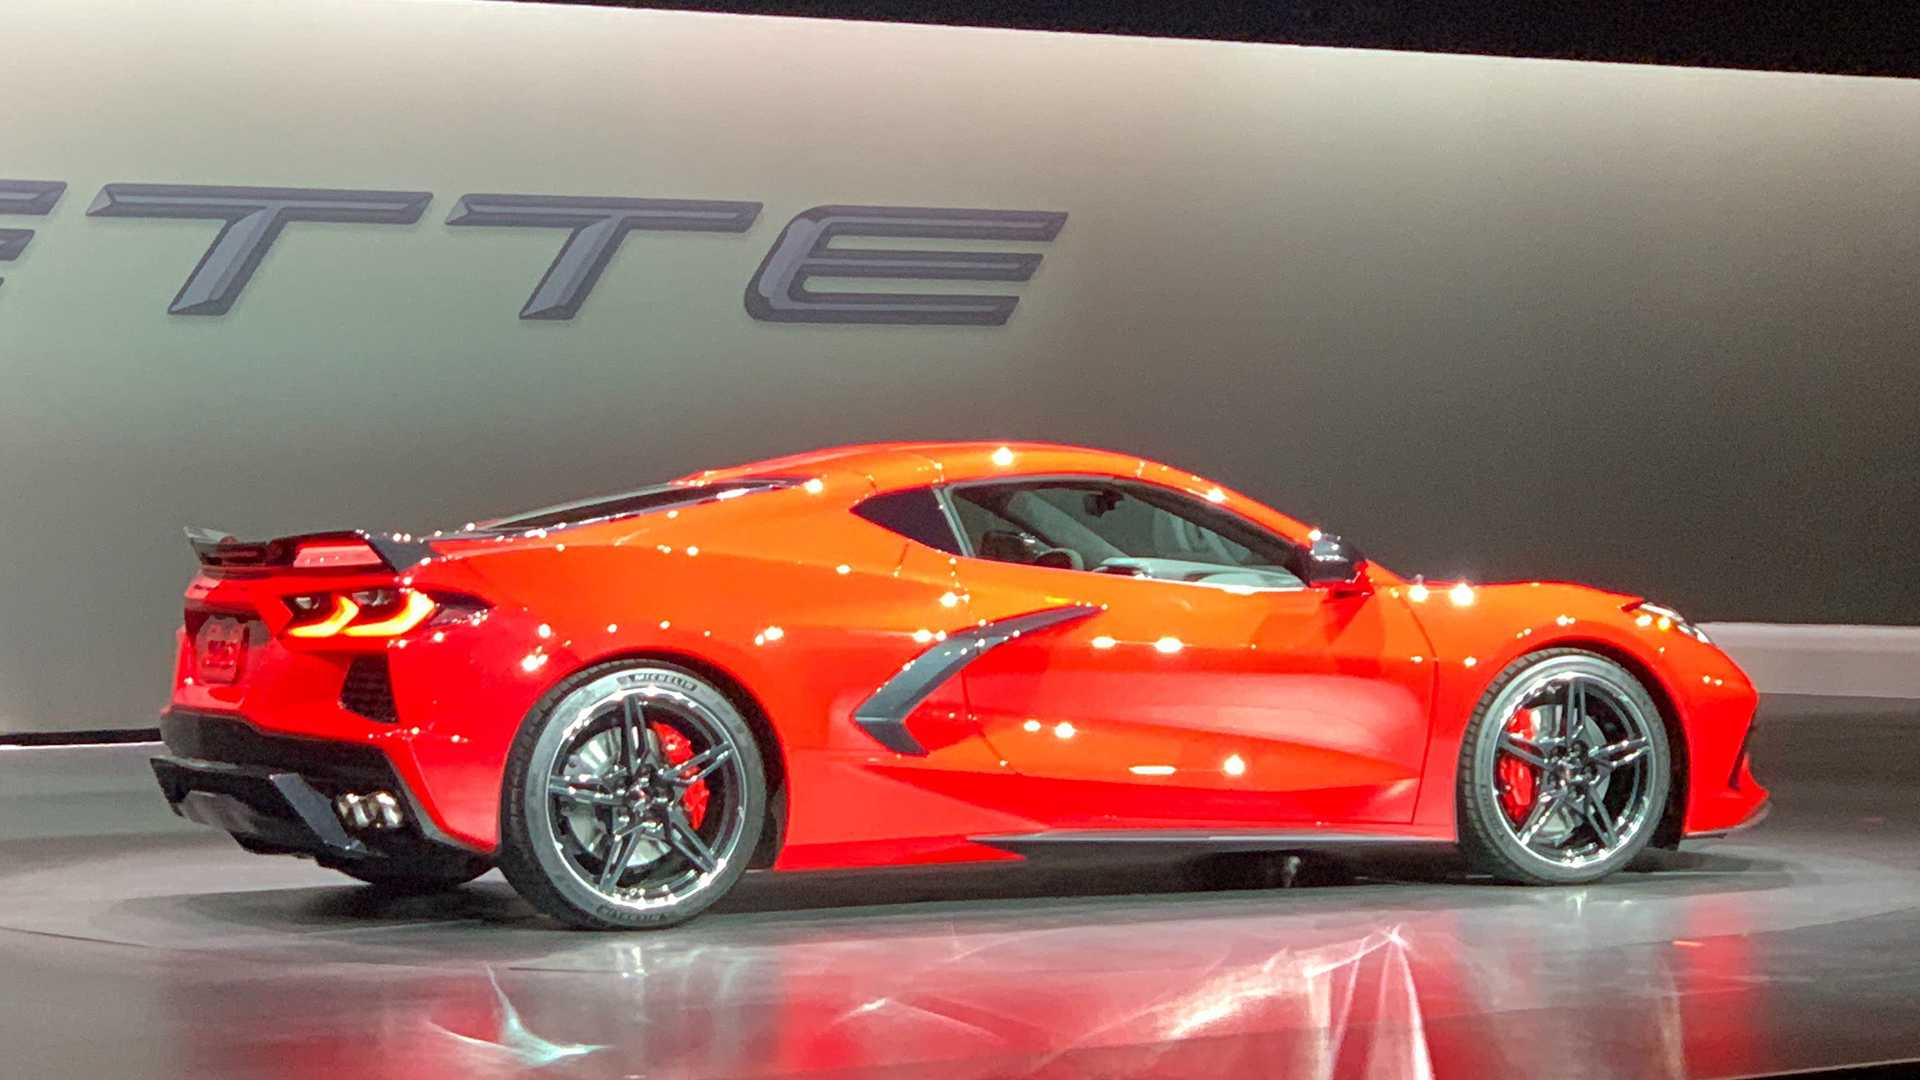 2020 Chevy Corvette Options List: What Everything Costs 2021 Chevy Corvette Grand Sport Colors, Dimensions, Horsepower